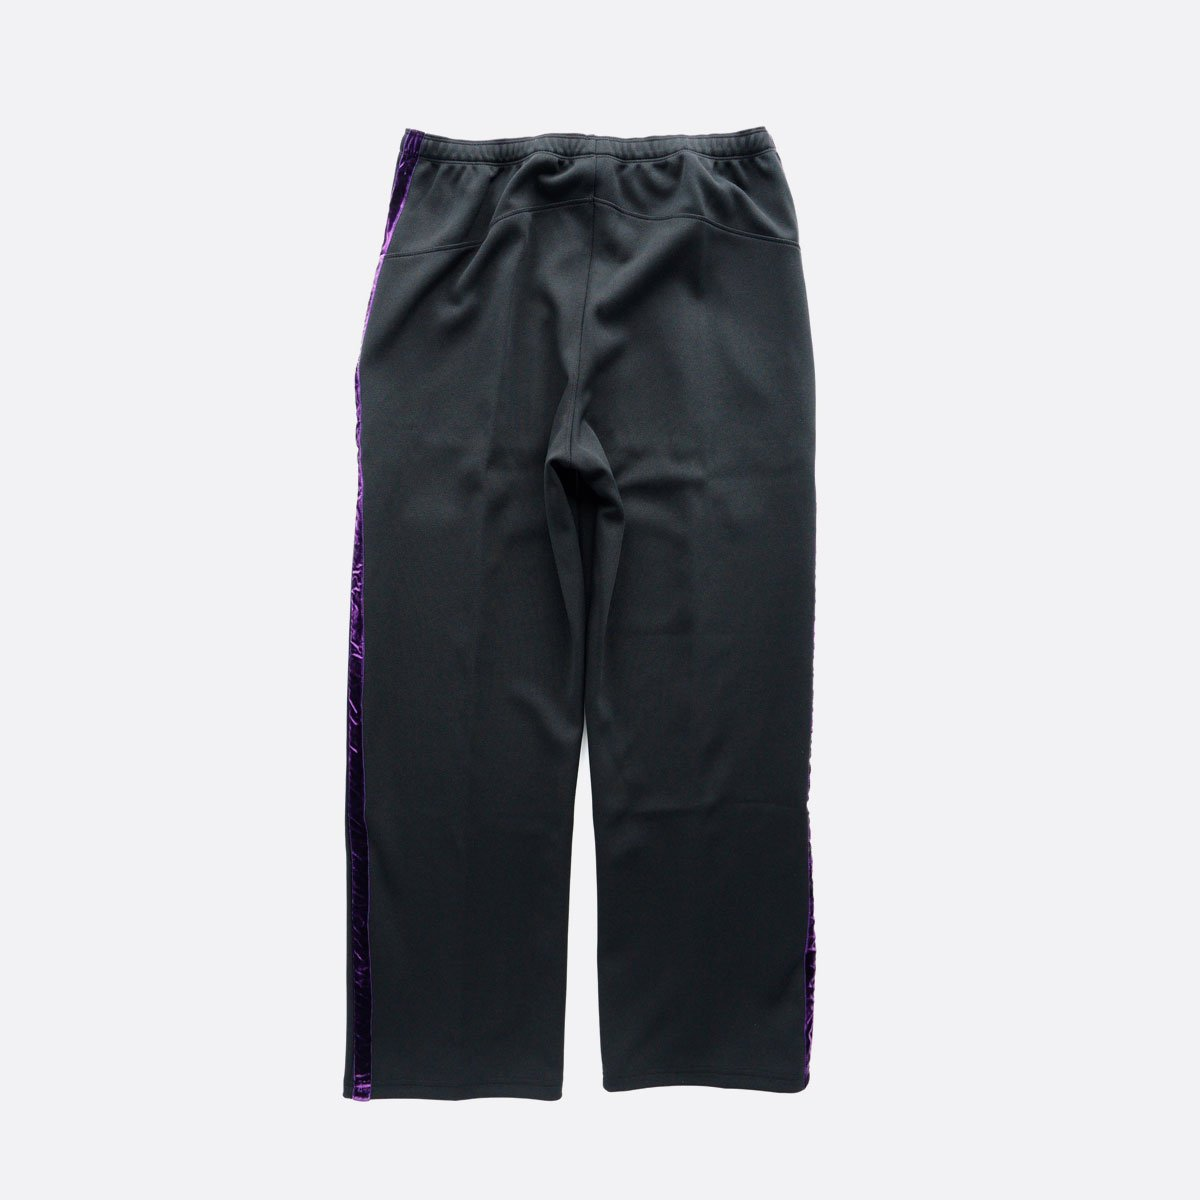 NEEDLES  Side Line Center Seam Pant - Poly Smooth  (black)2